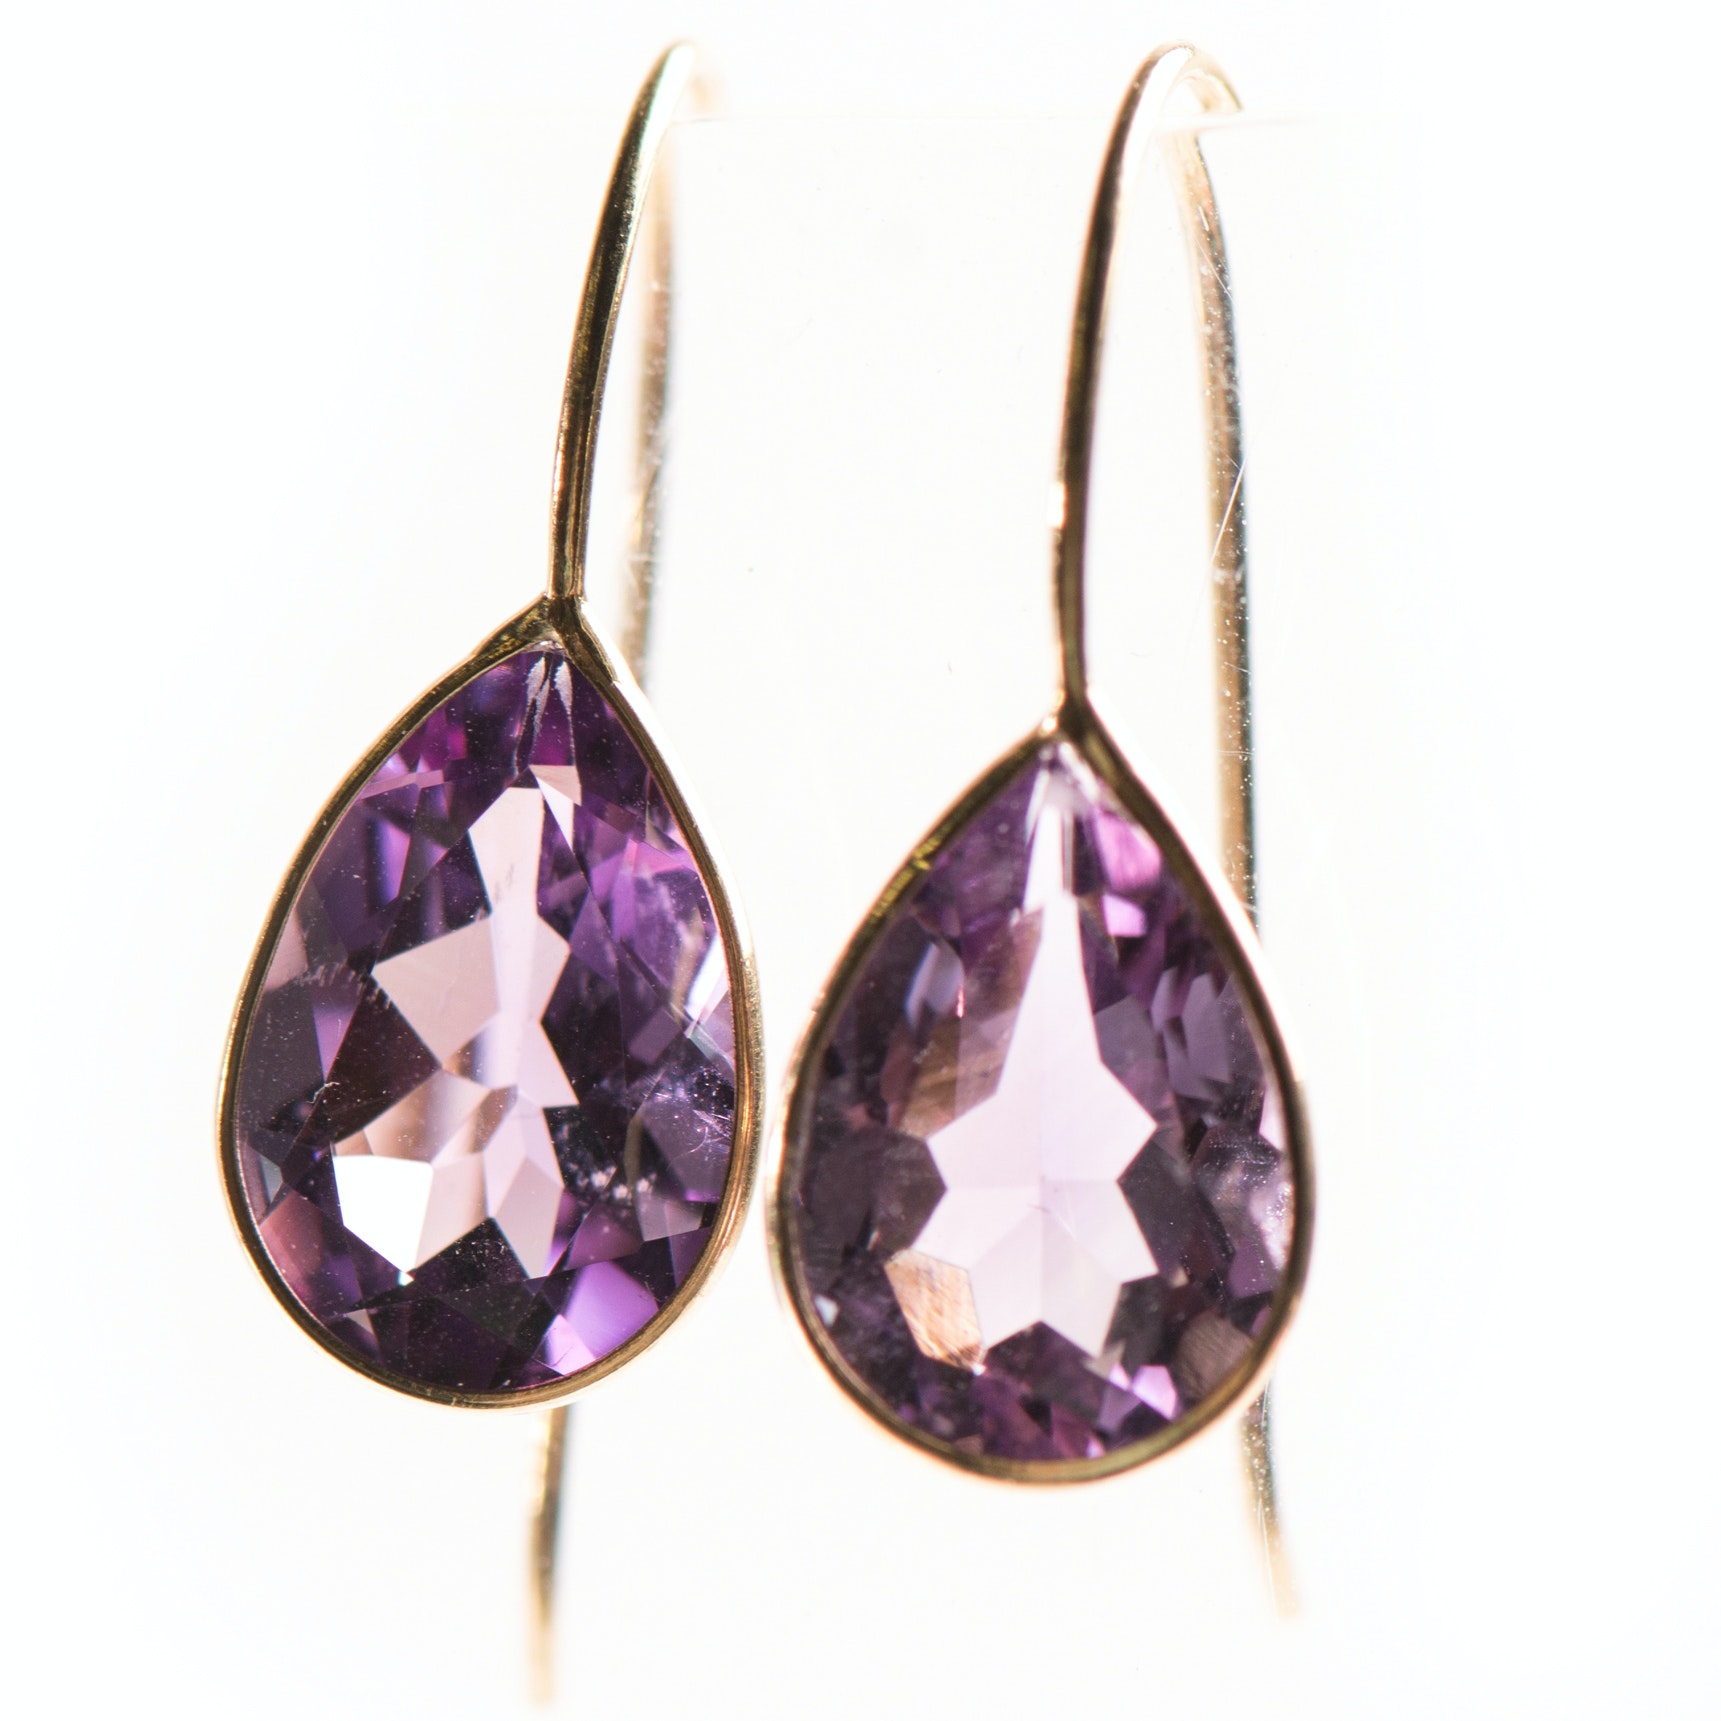 14K Yellow Gold Bezel Set Amethyst Earrings